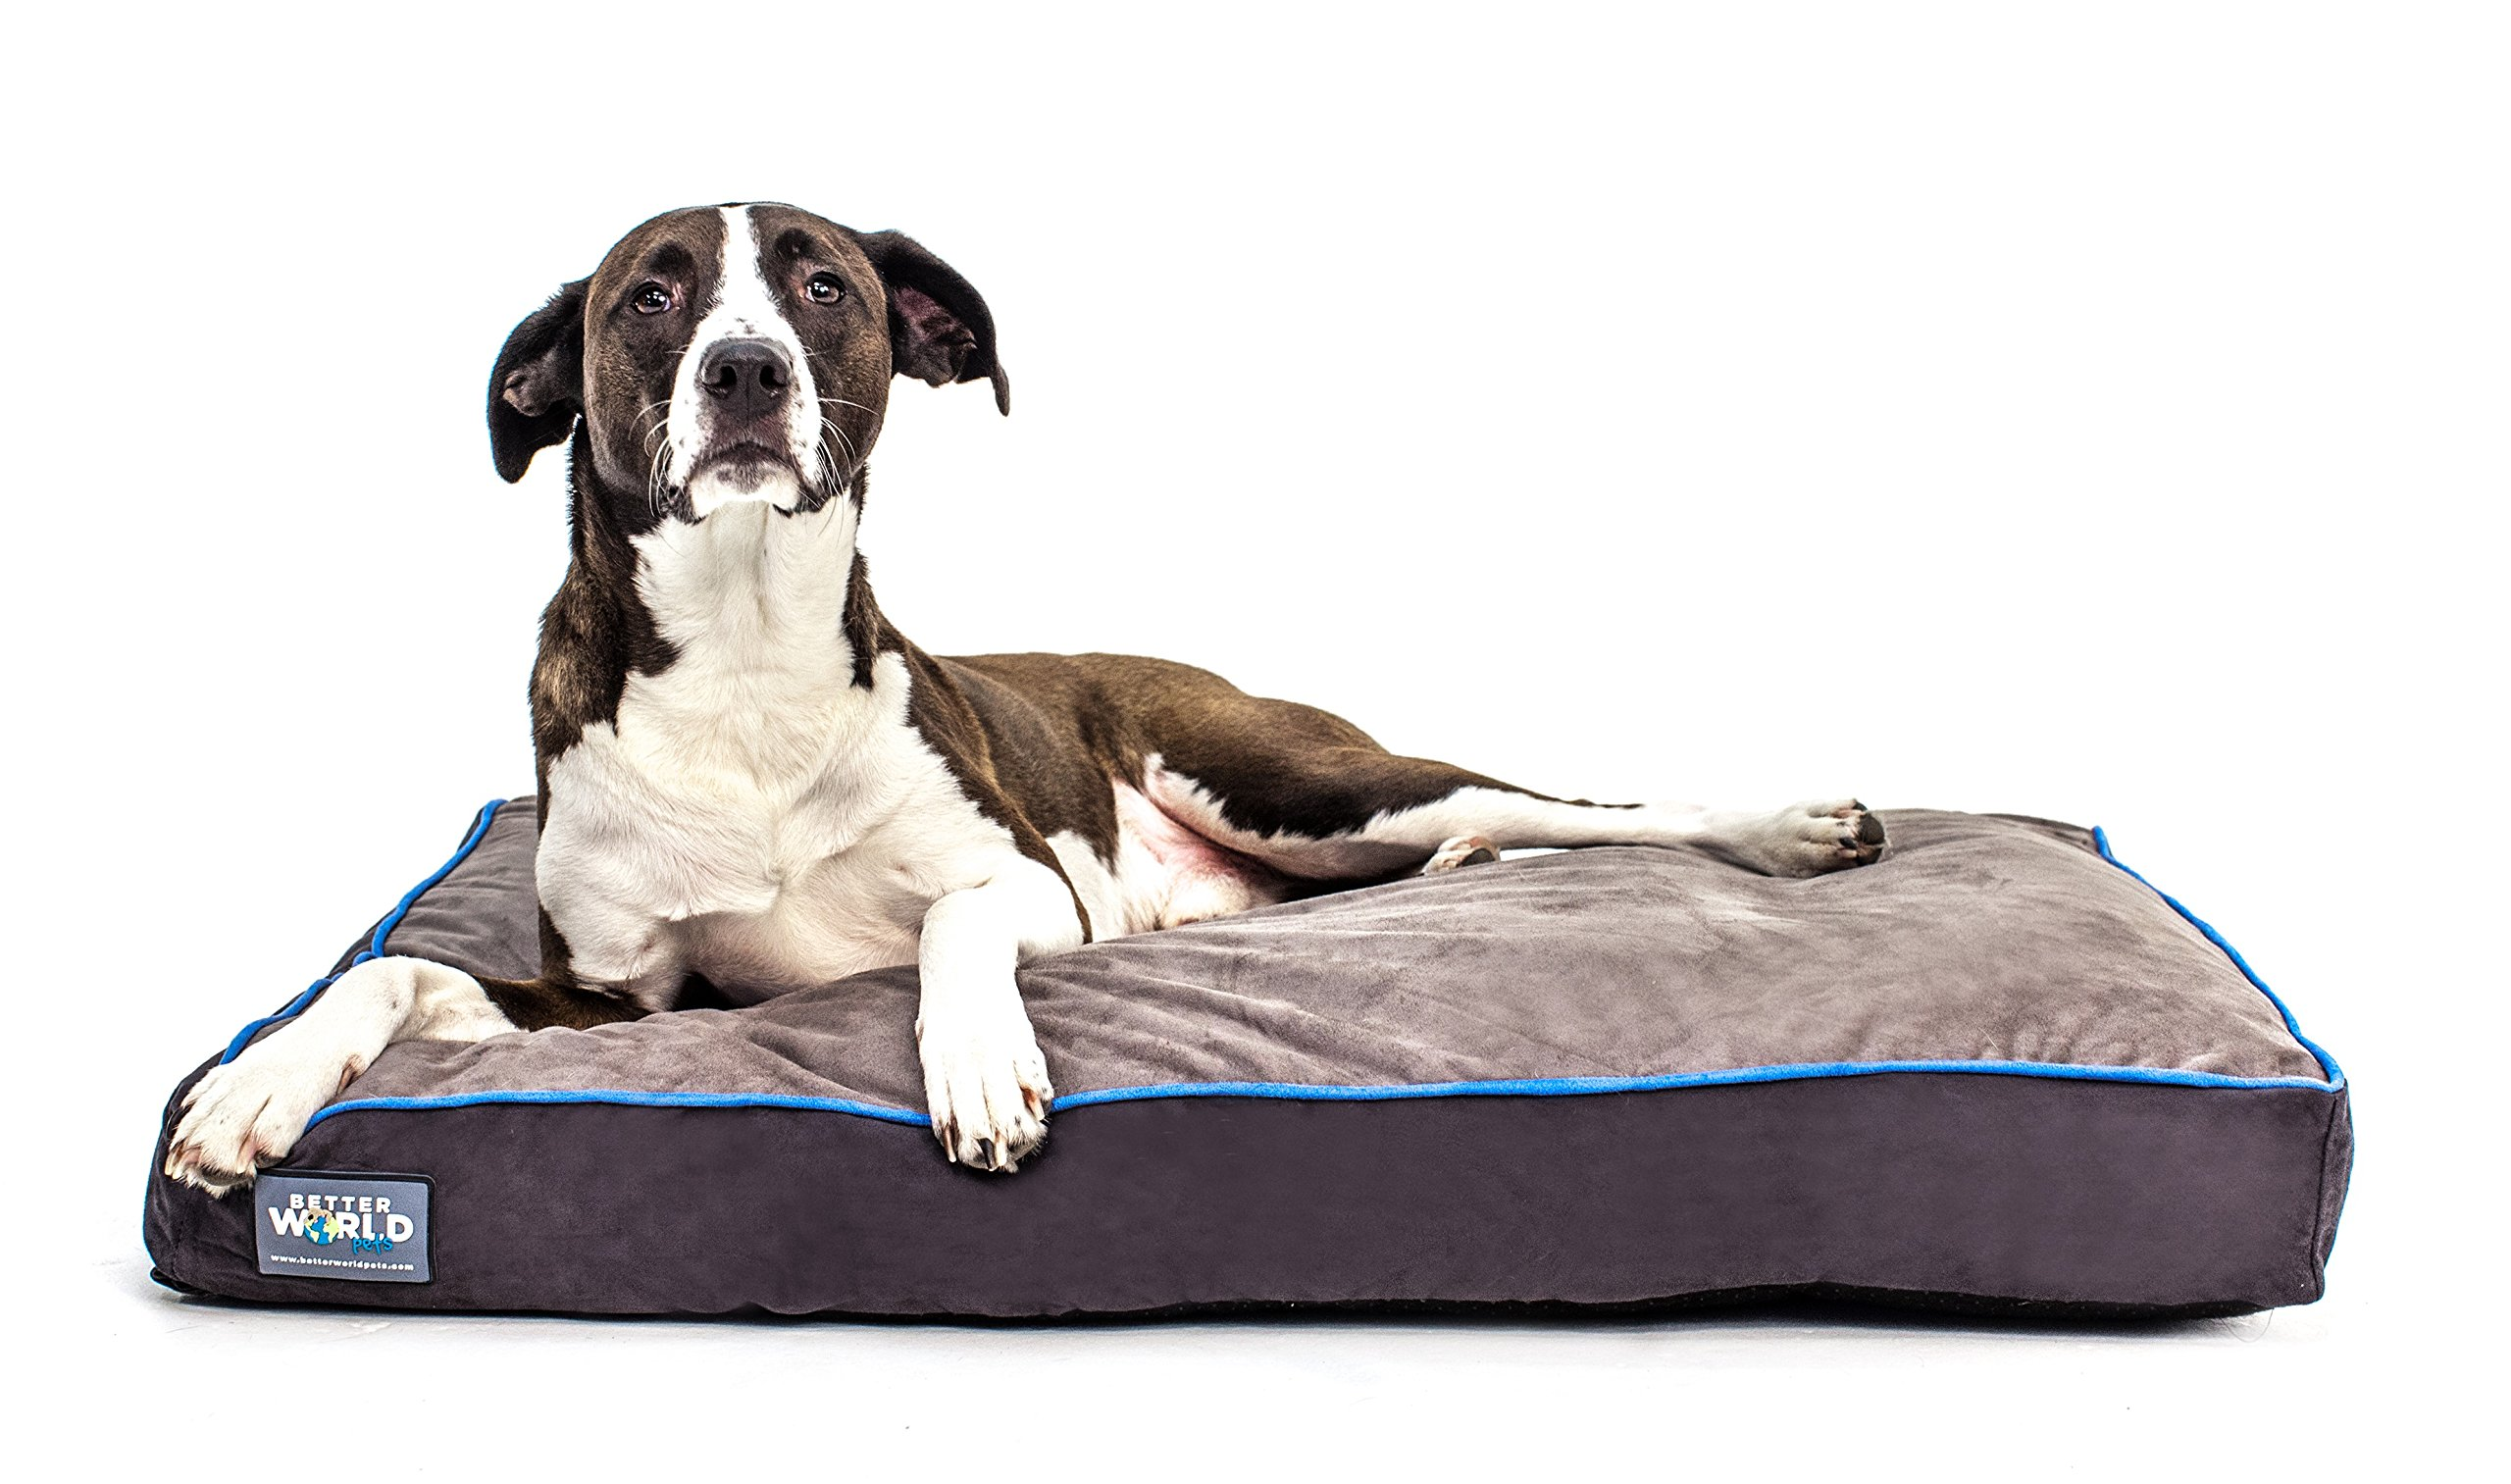 First-Quality 5'' Thick Orthopedic Dog Bed | Pure Premium Memory Foam | Ideal for Aging Dogs | Waterproof | Helps Ease Pain of Arthritis & Hip Dysplasia | 180 GSM Removable Washable Cover